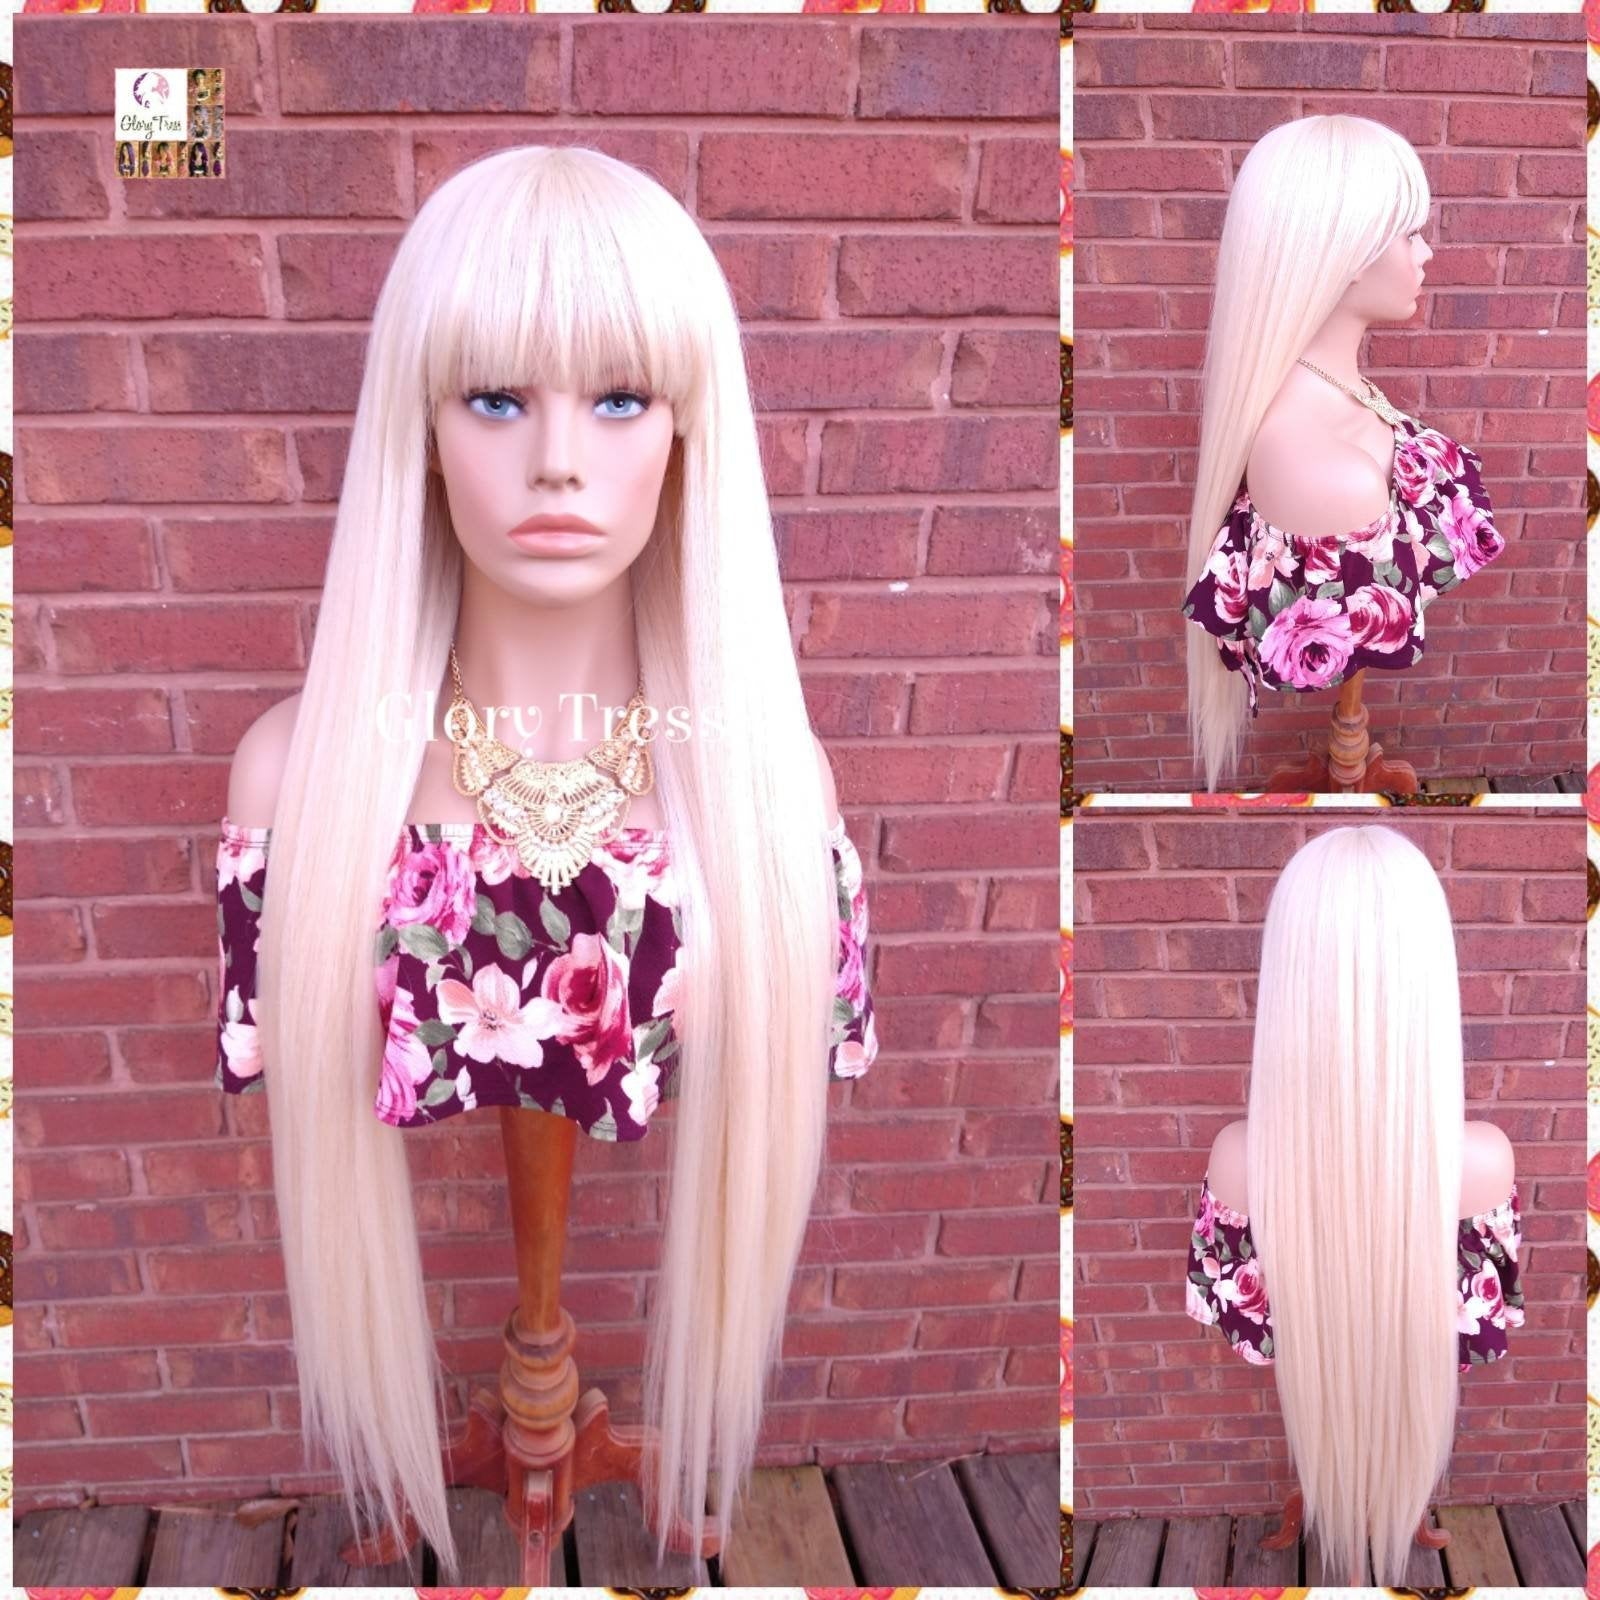 NEW ARRIVAL // Extra Long Full Wig, Wig with China  Bangs, 613 Platinum Blonde Wig, Glory Tress Wigs, Yaki Texture // NOBLE